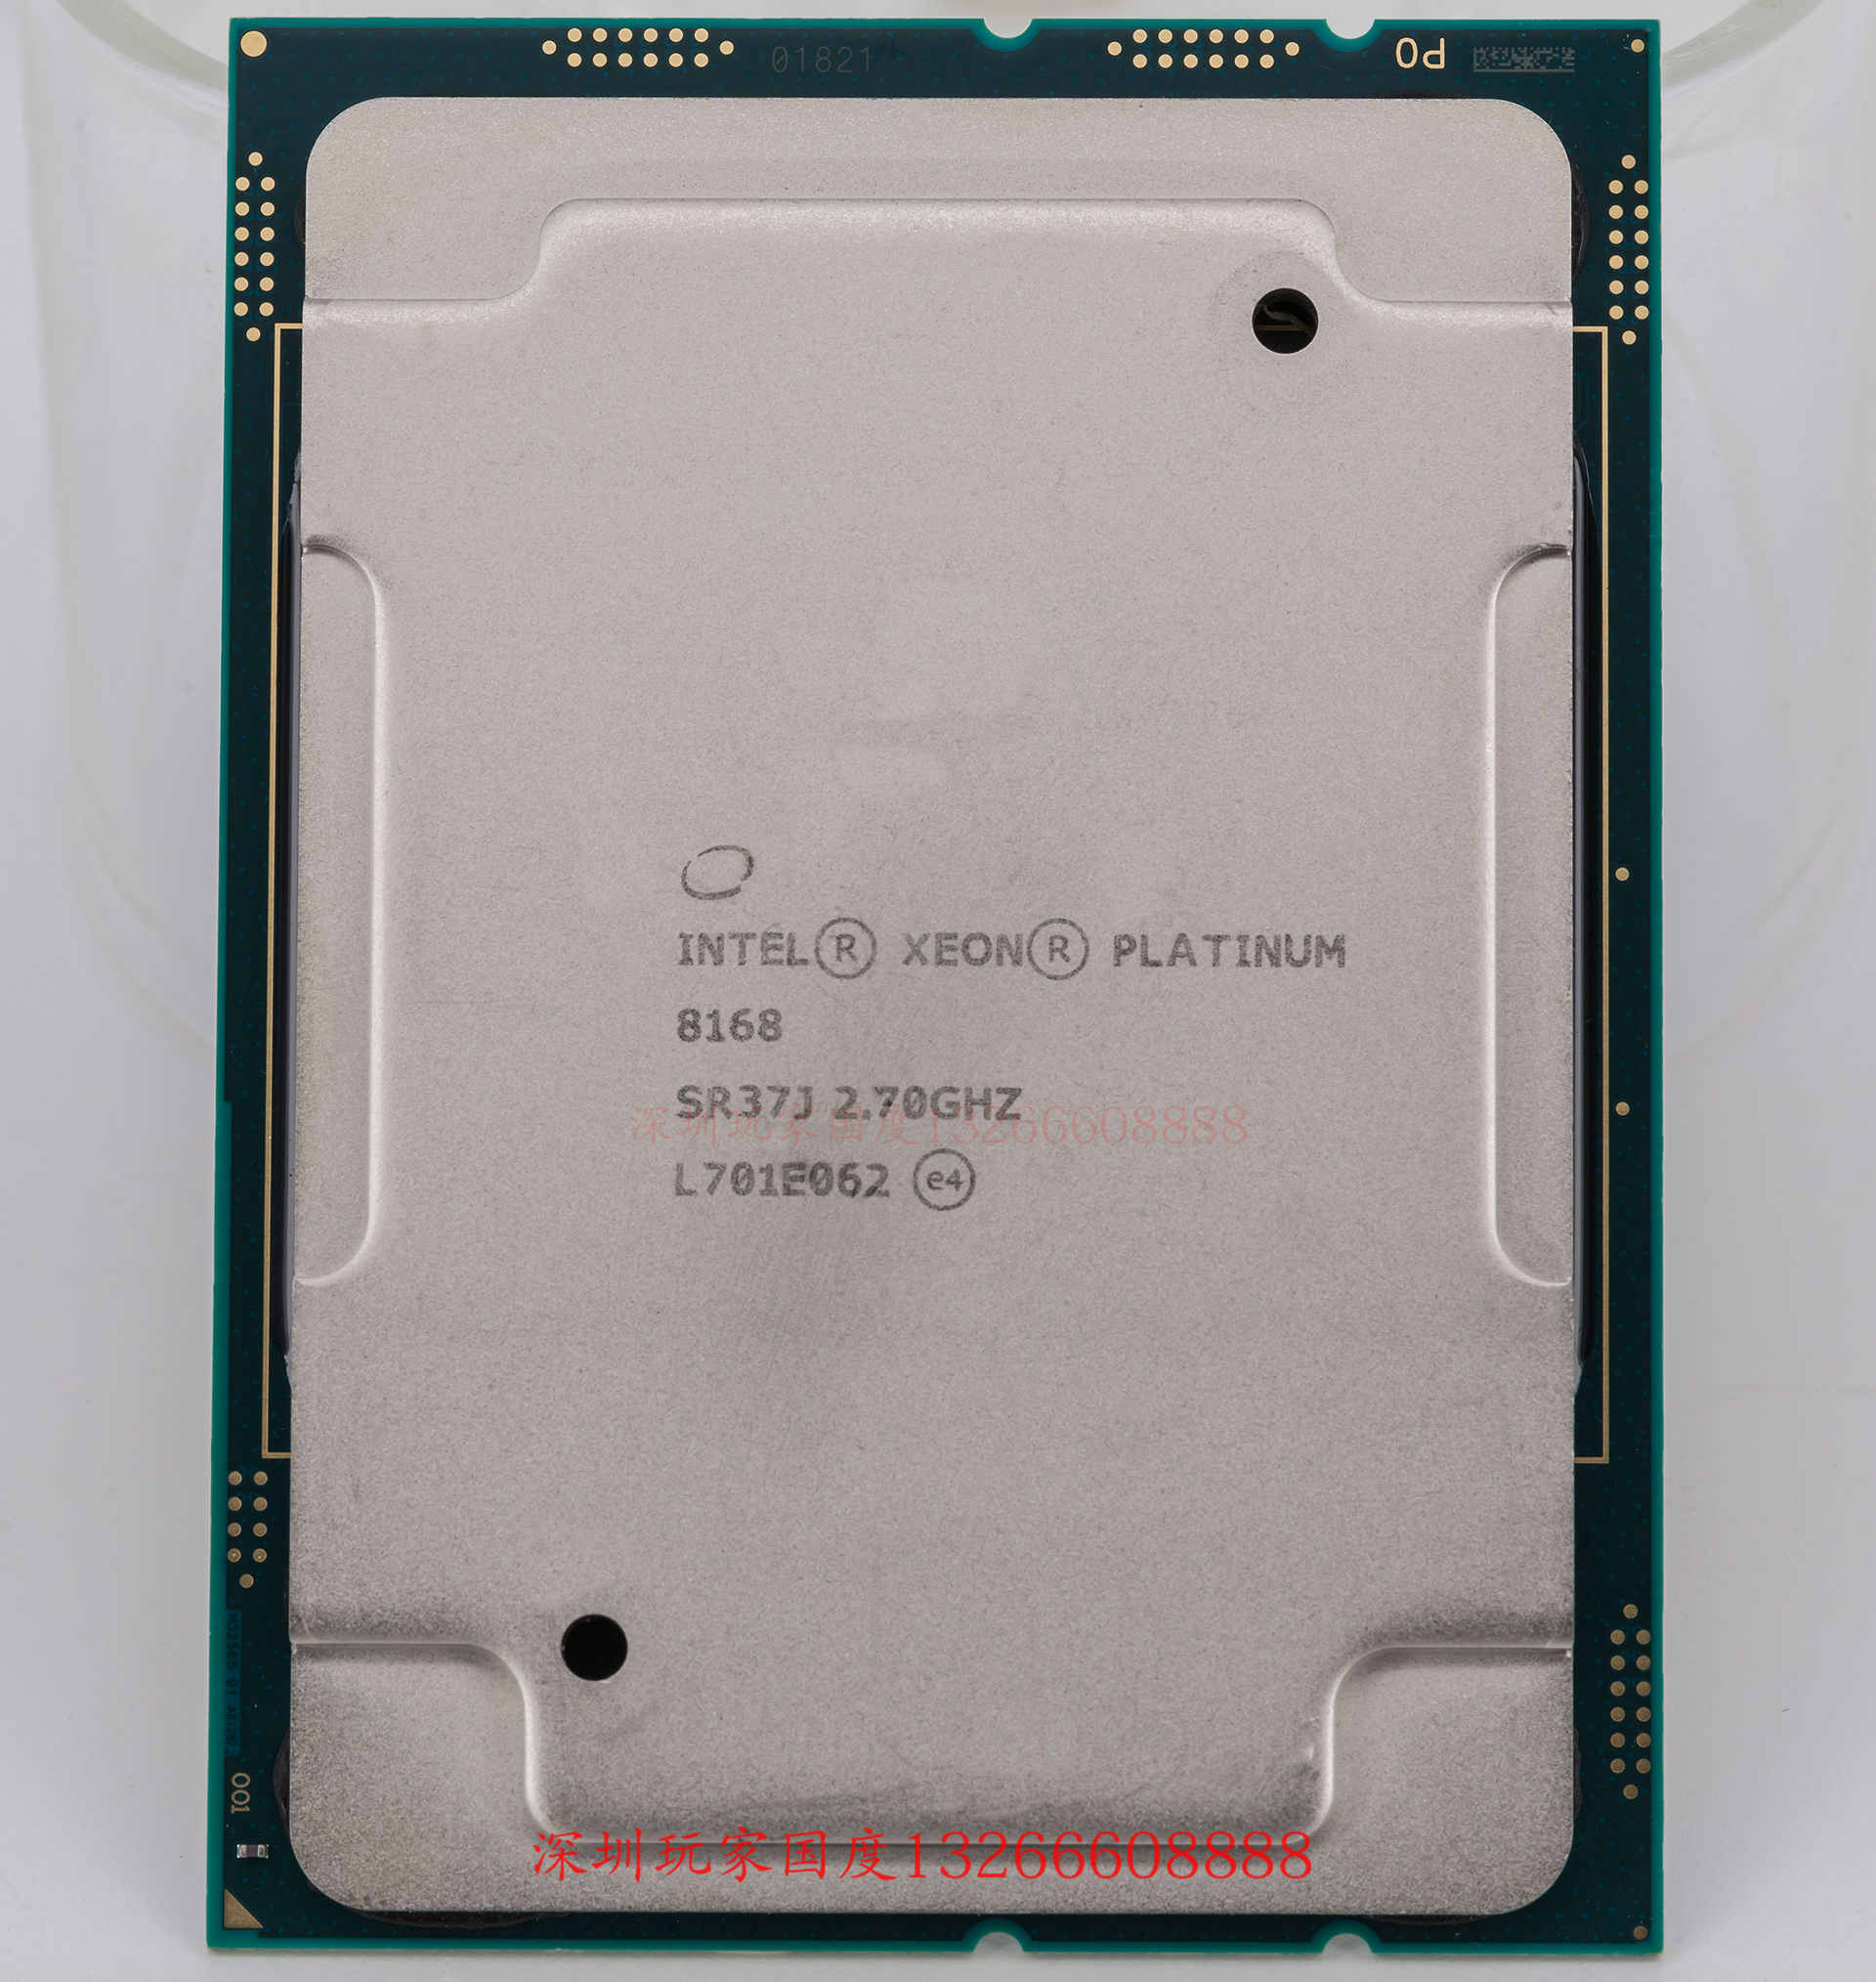 Intel Platinum 8168 24 Core 48 Threads Processor and Dual Socket 48 Cores 96 Threads Benchmarks